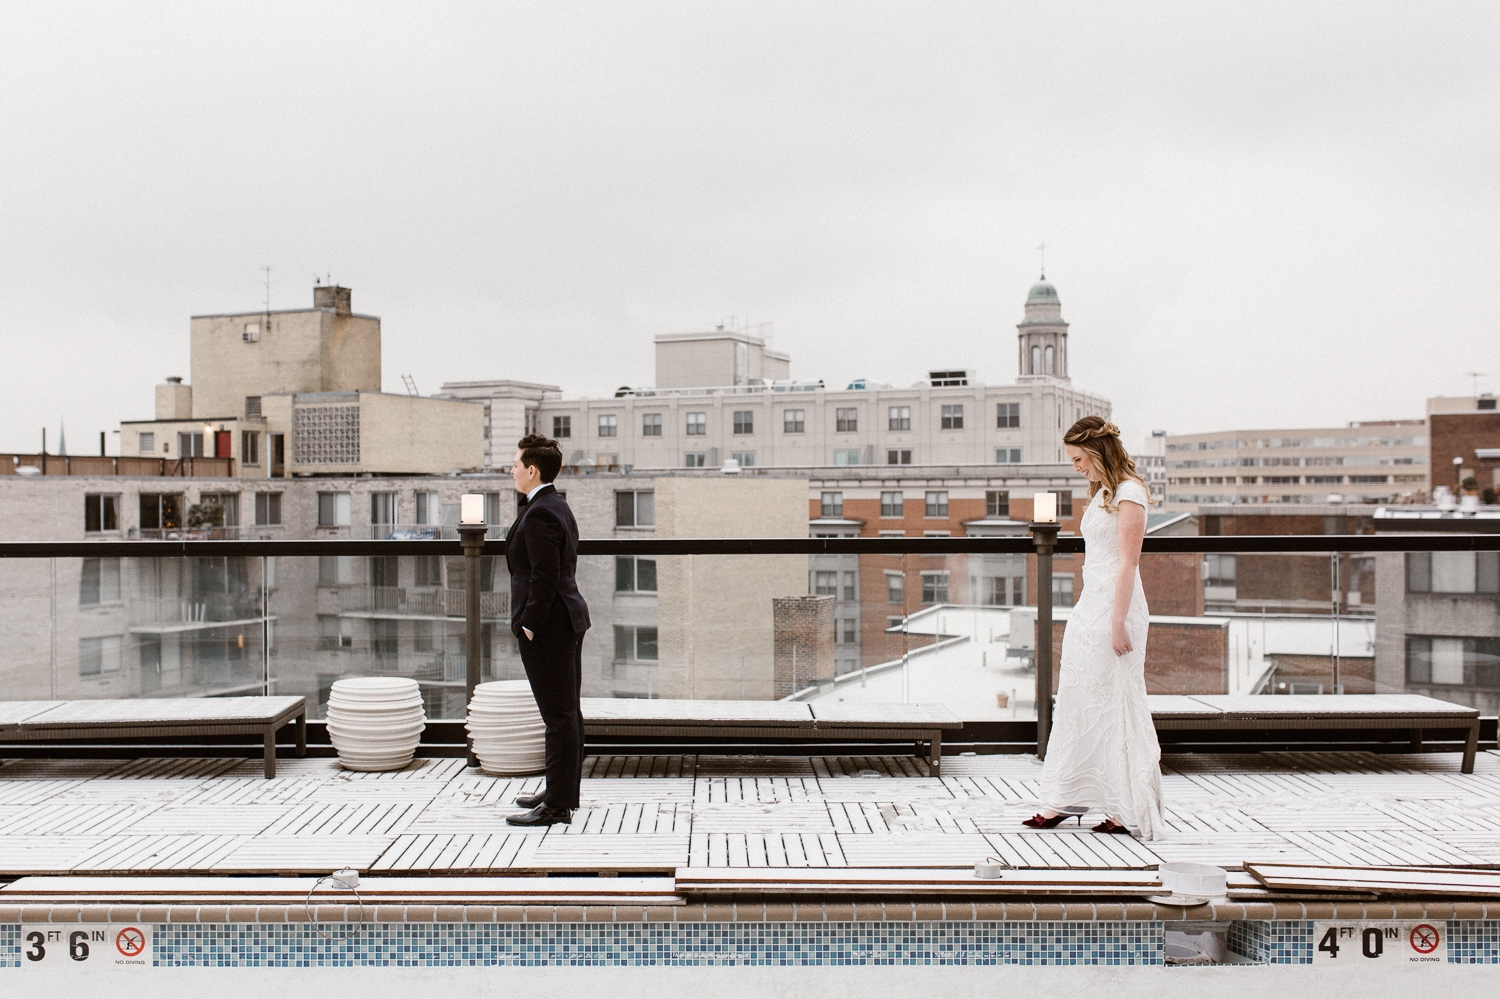 mason-and-rook-first-look-rooftop-josephine-butler-parks-wedding-photographer 44.jpg